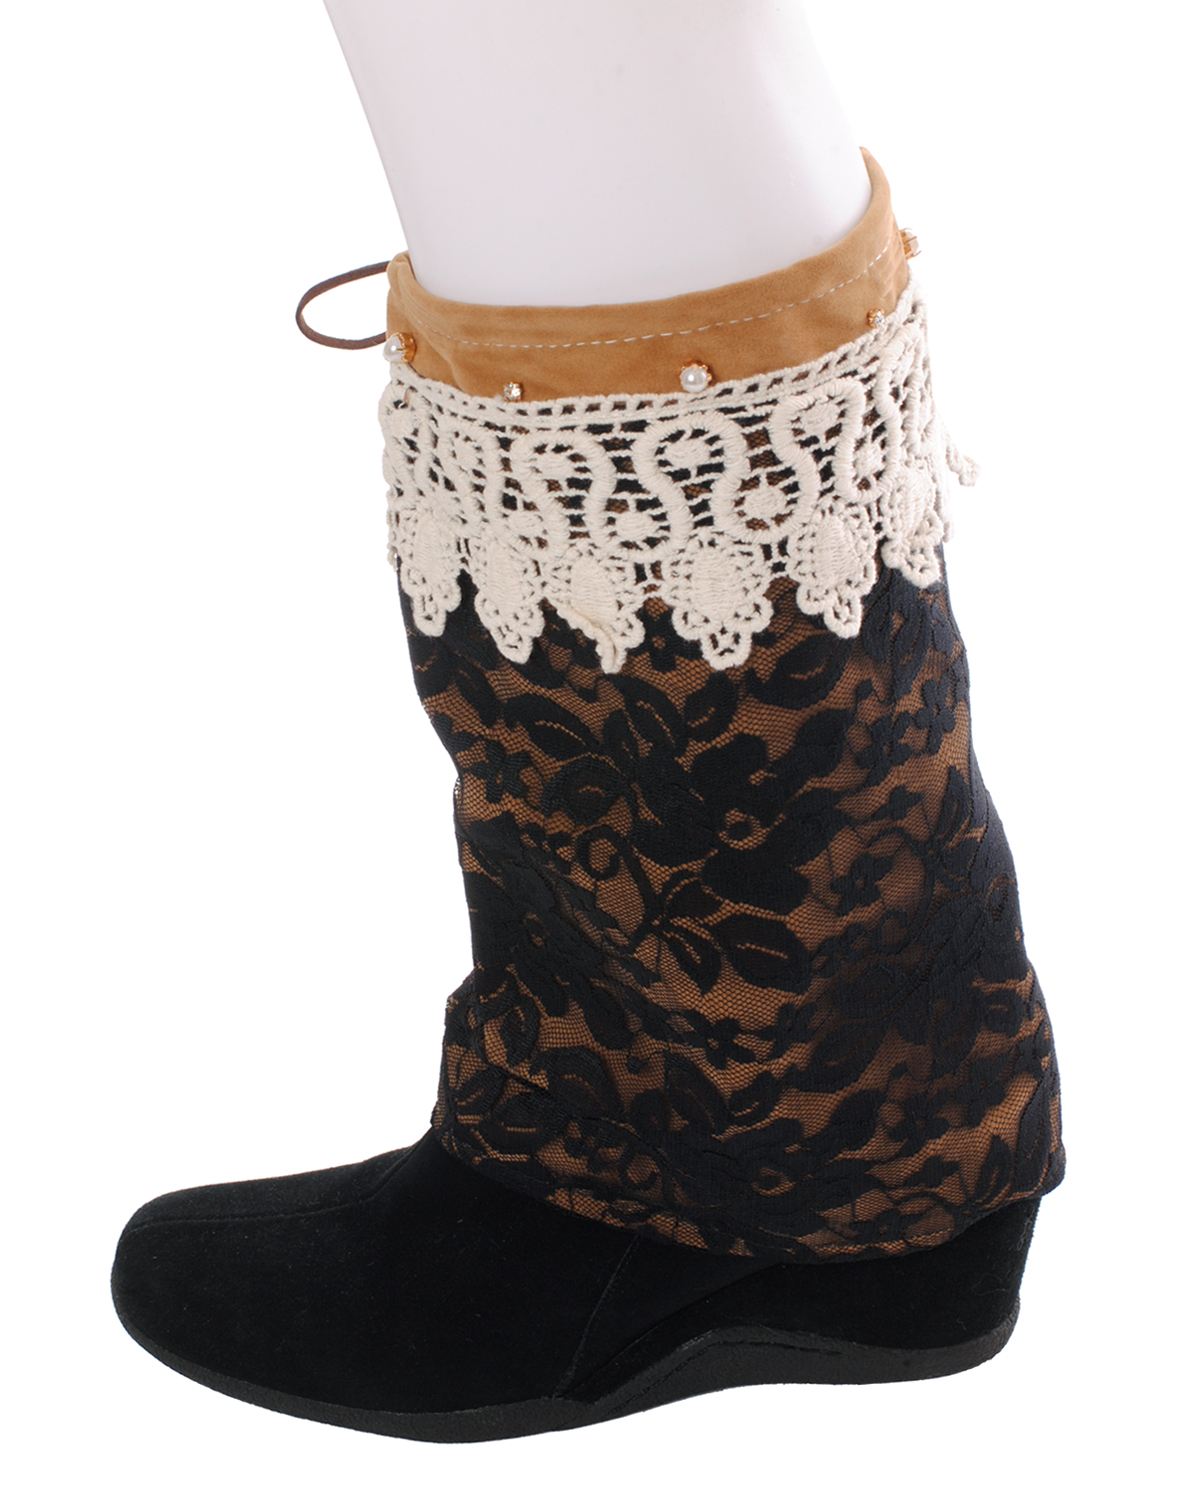 IW0103(GJ)-wholesale-boot-rugs-western-faux-suede-floral-lace-studs-rhinestone-pearl-drawstring-closure(0).jpg